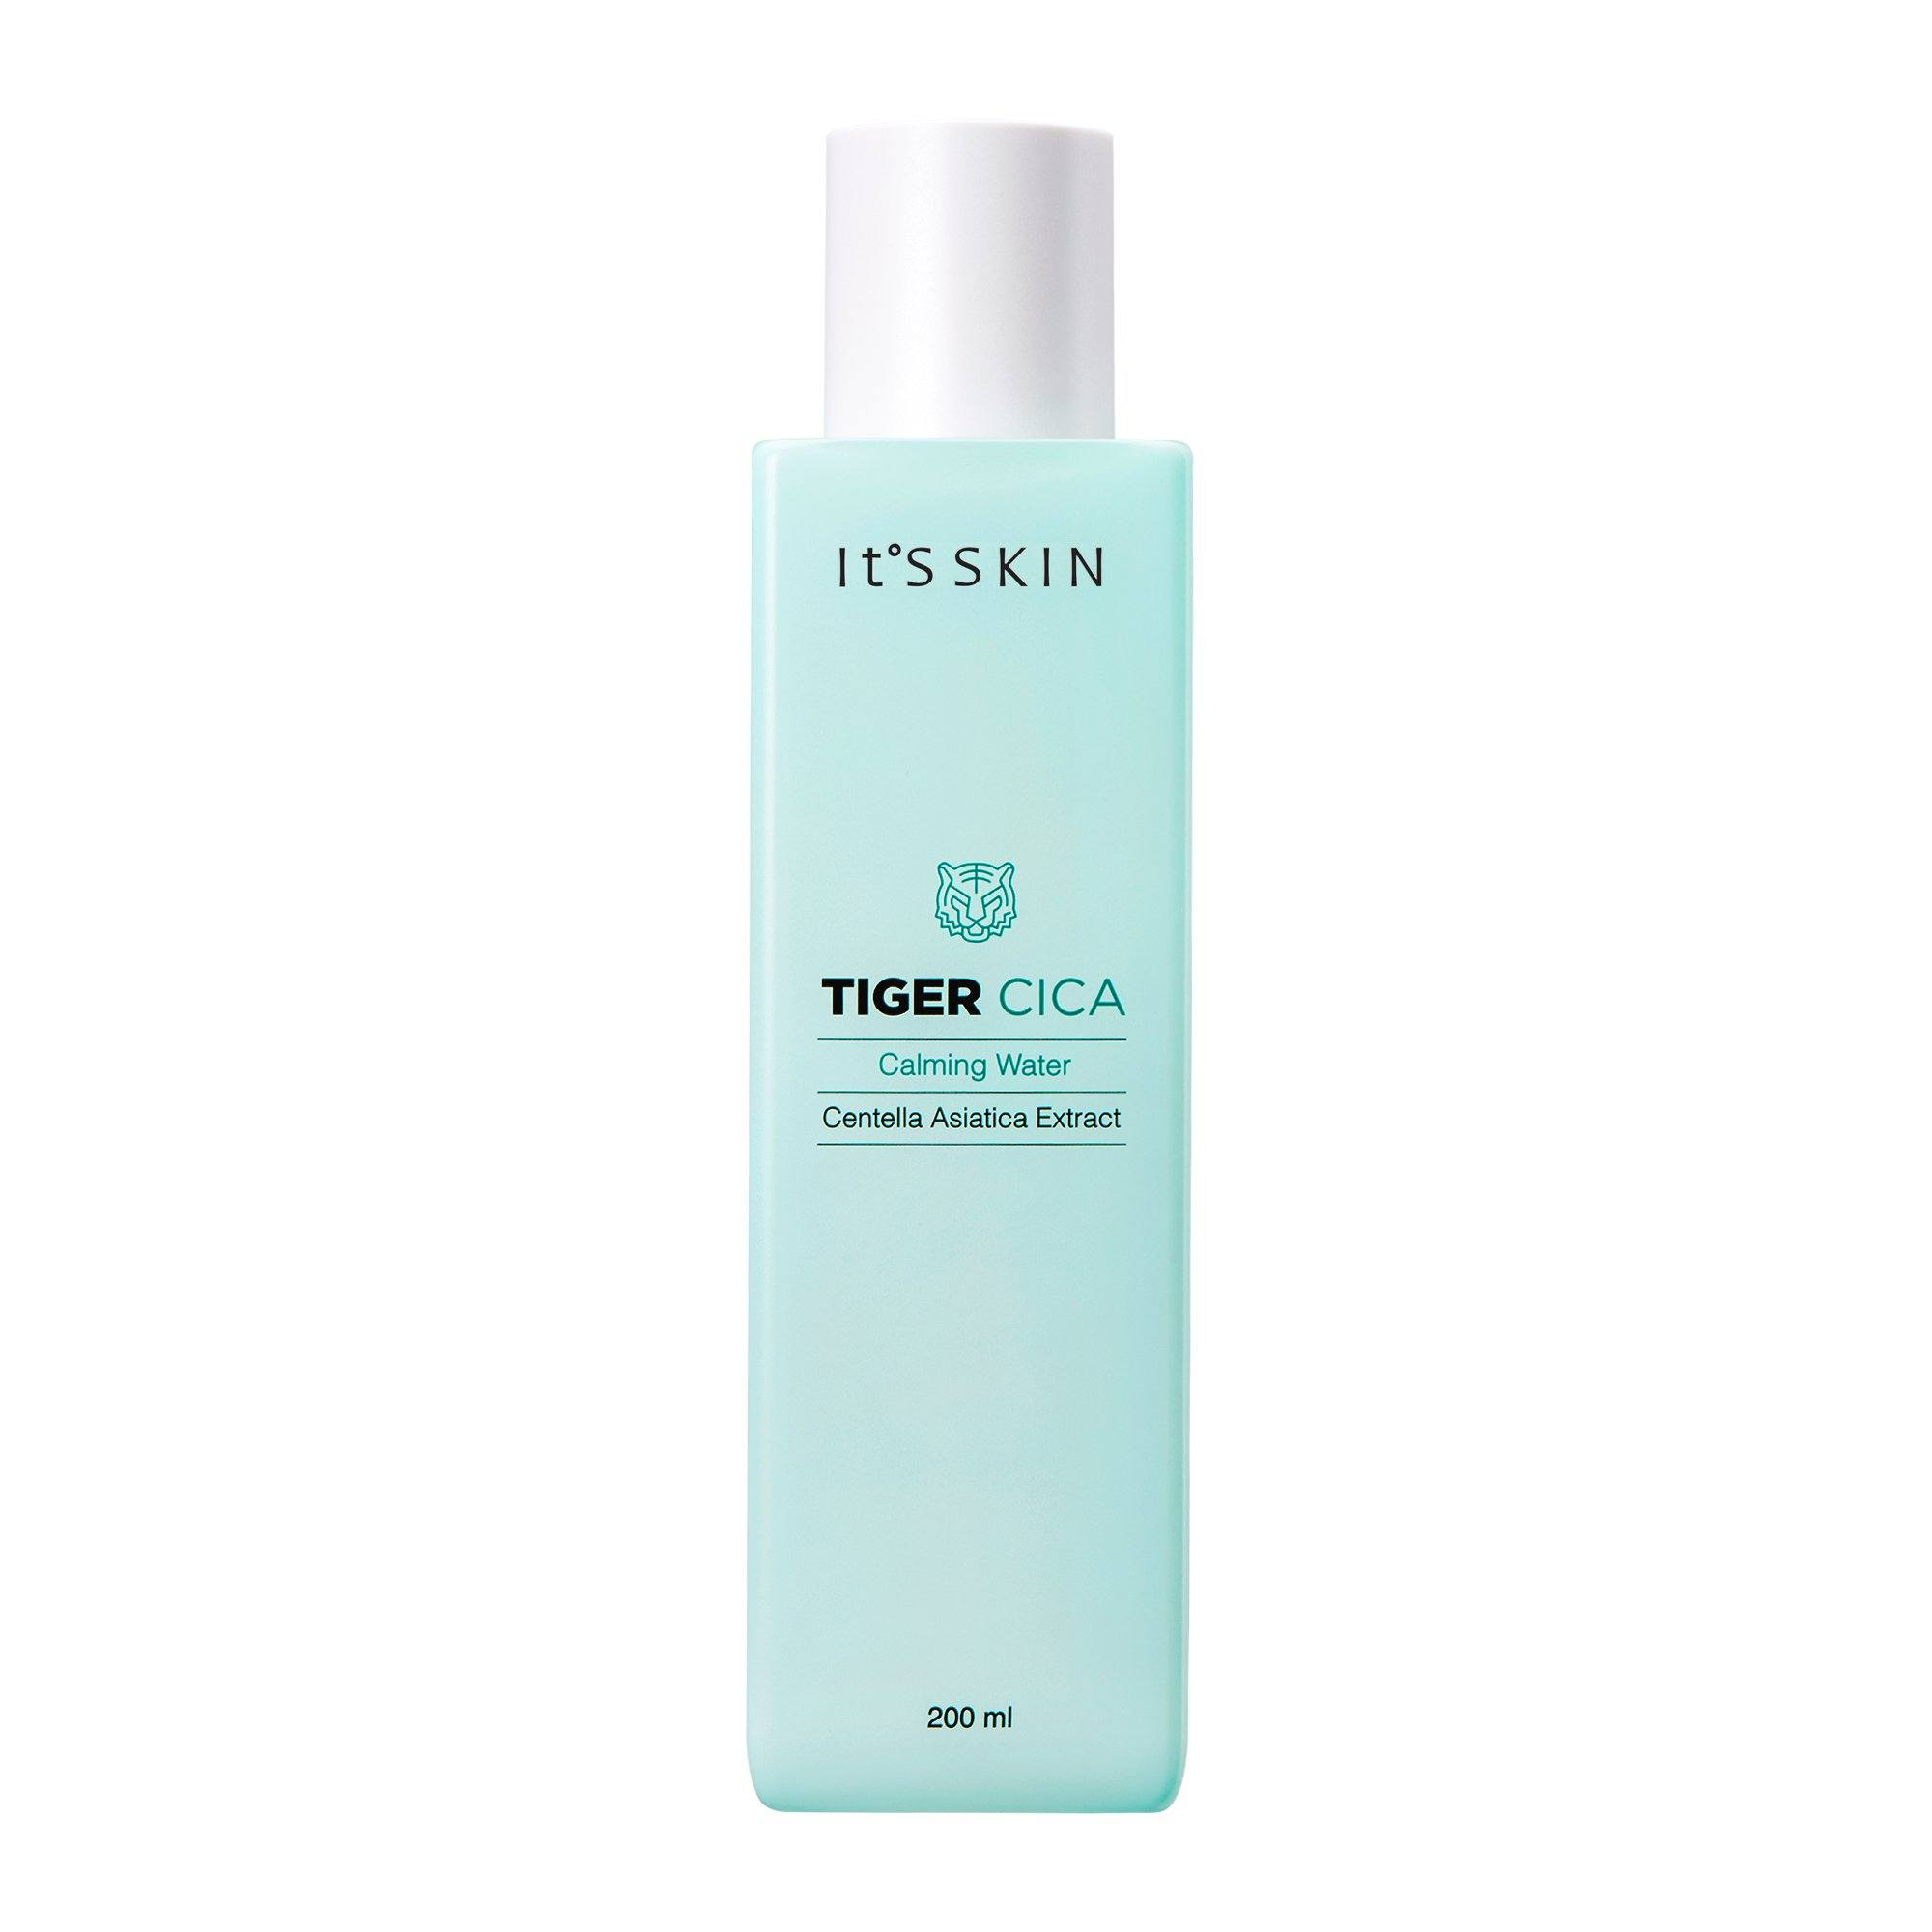 Health & Beauty > Personal Care > Cosmetics > Skin Care > Toners & Astringents > Toners - Tiger Cica Calming Water Tonik Do Twarzy 200 Ml